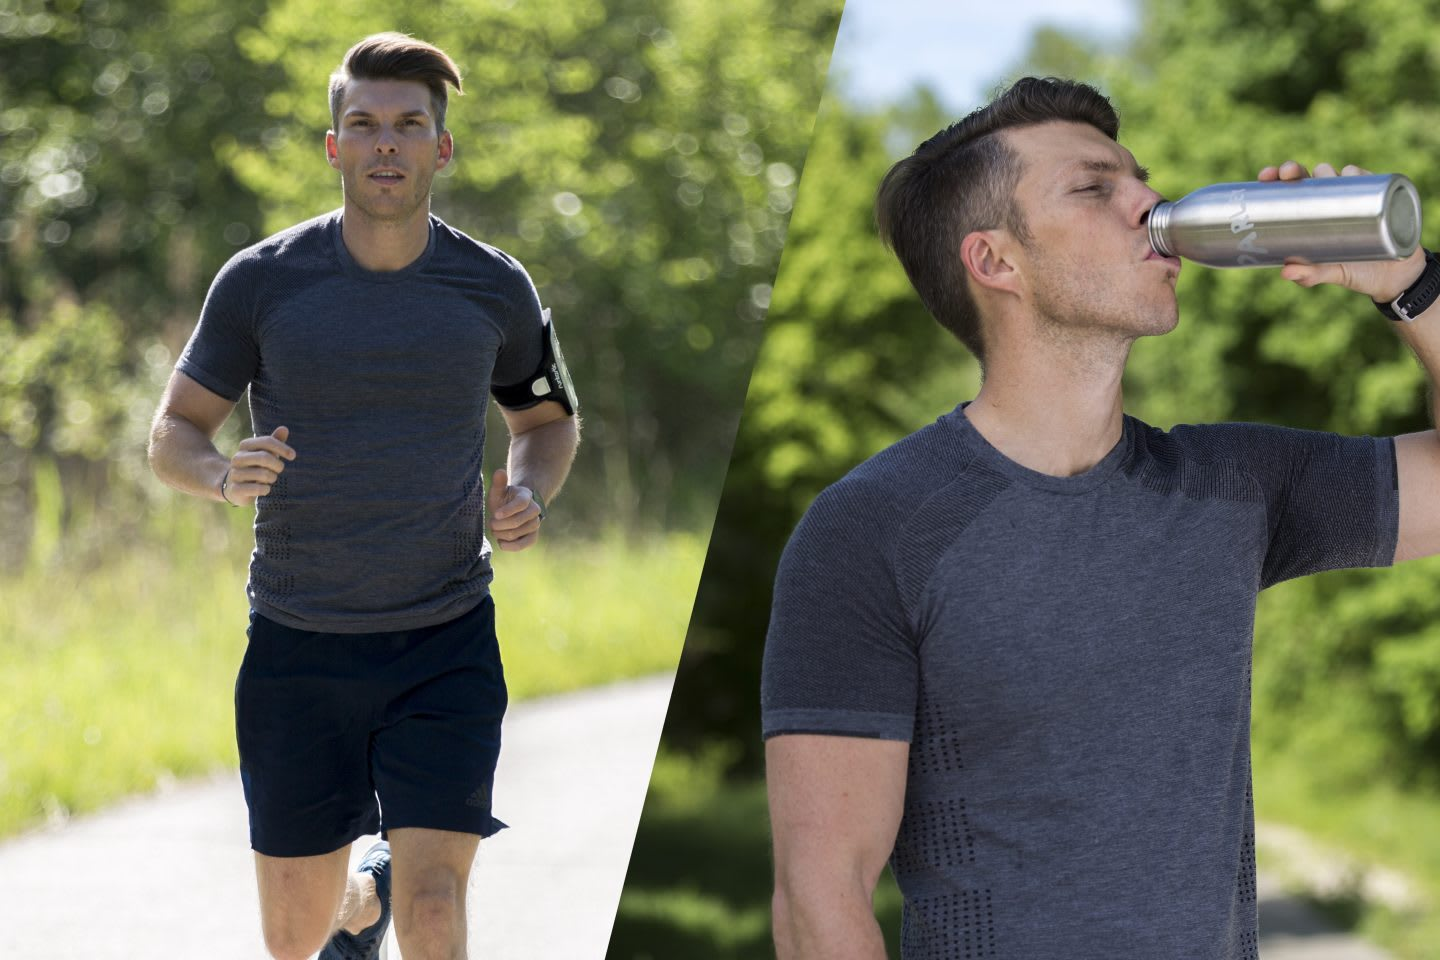 A man is running outdoors and later takes a breather and drinks some water from a reusable water bottle. water, run, running, sustainable, outdoor, man